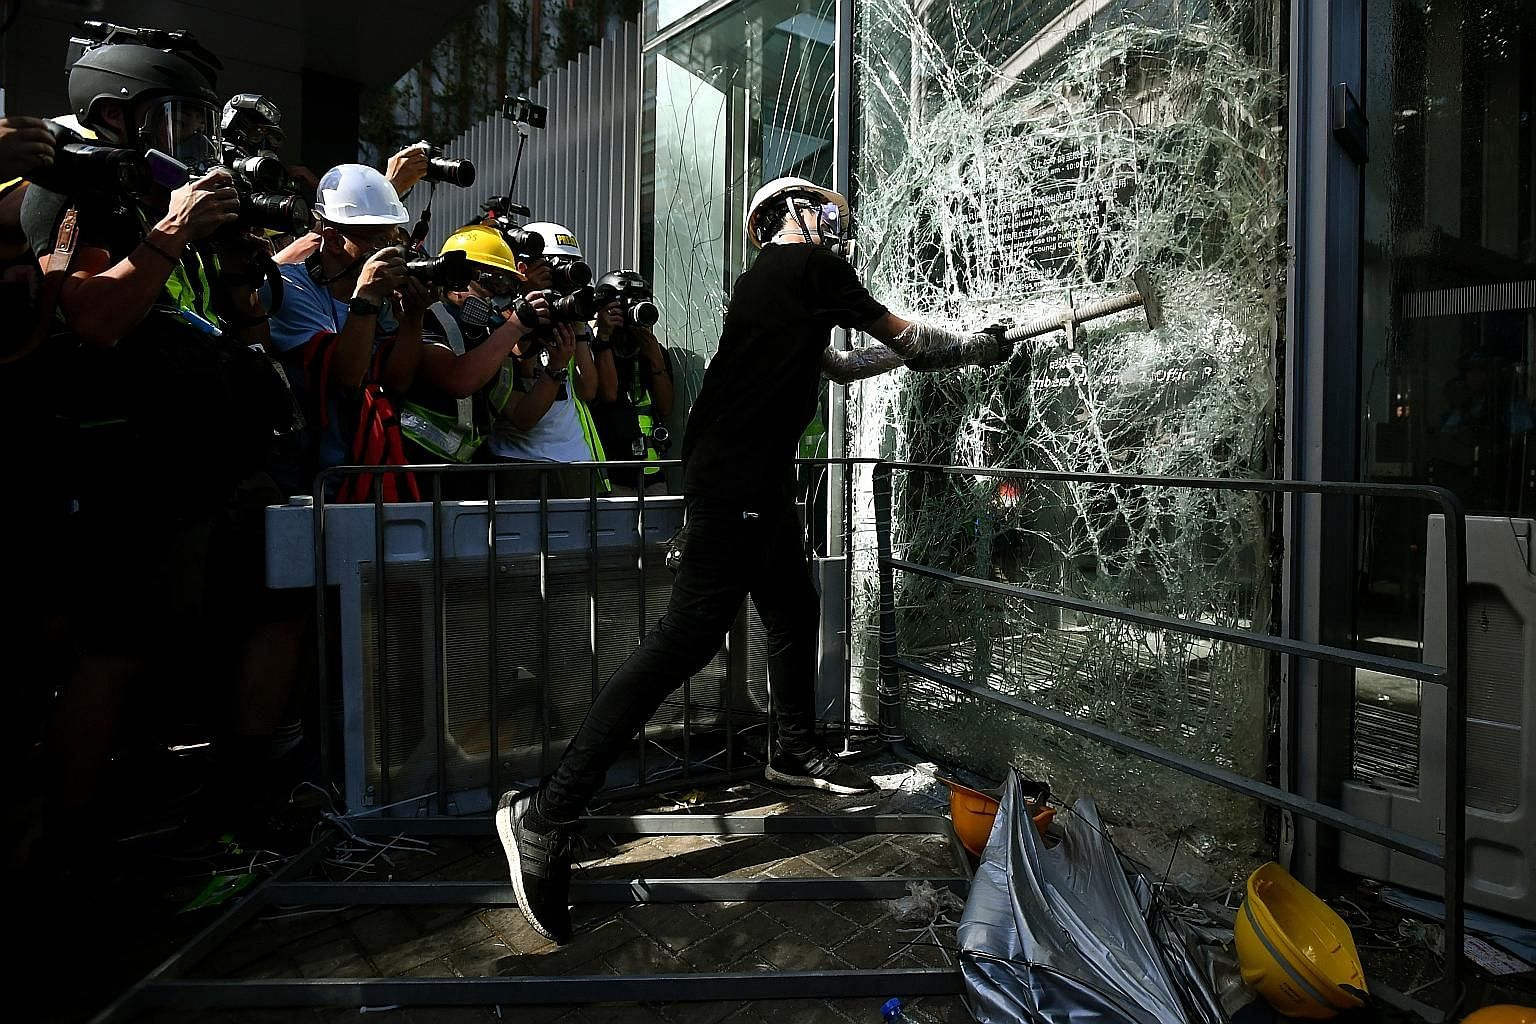 A protester smashing a glass panel at the Legislative Council building in Hong Kong on July 1, the anniversary of the city's handover to Chinese rule. This photo will be among the highlights at the Through The Lens exhibition at the National Museum o